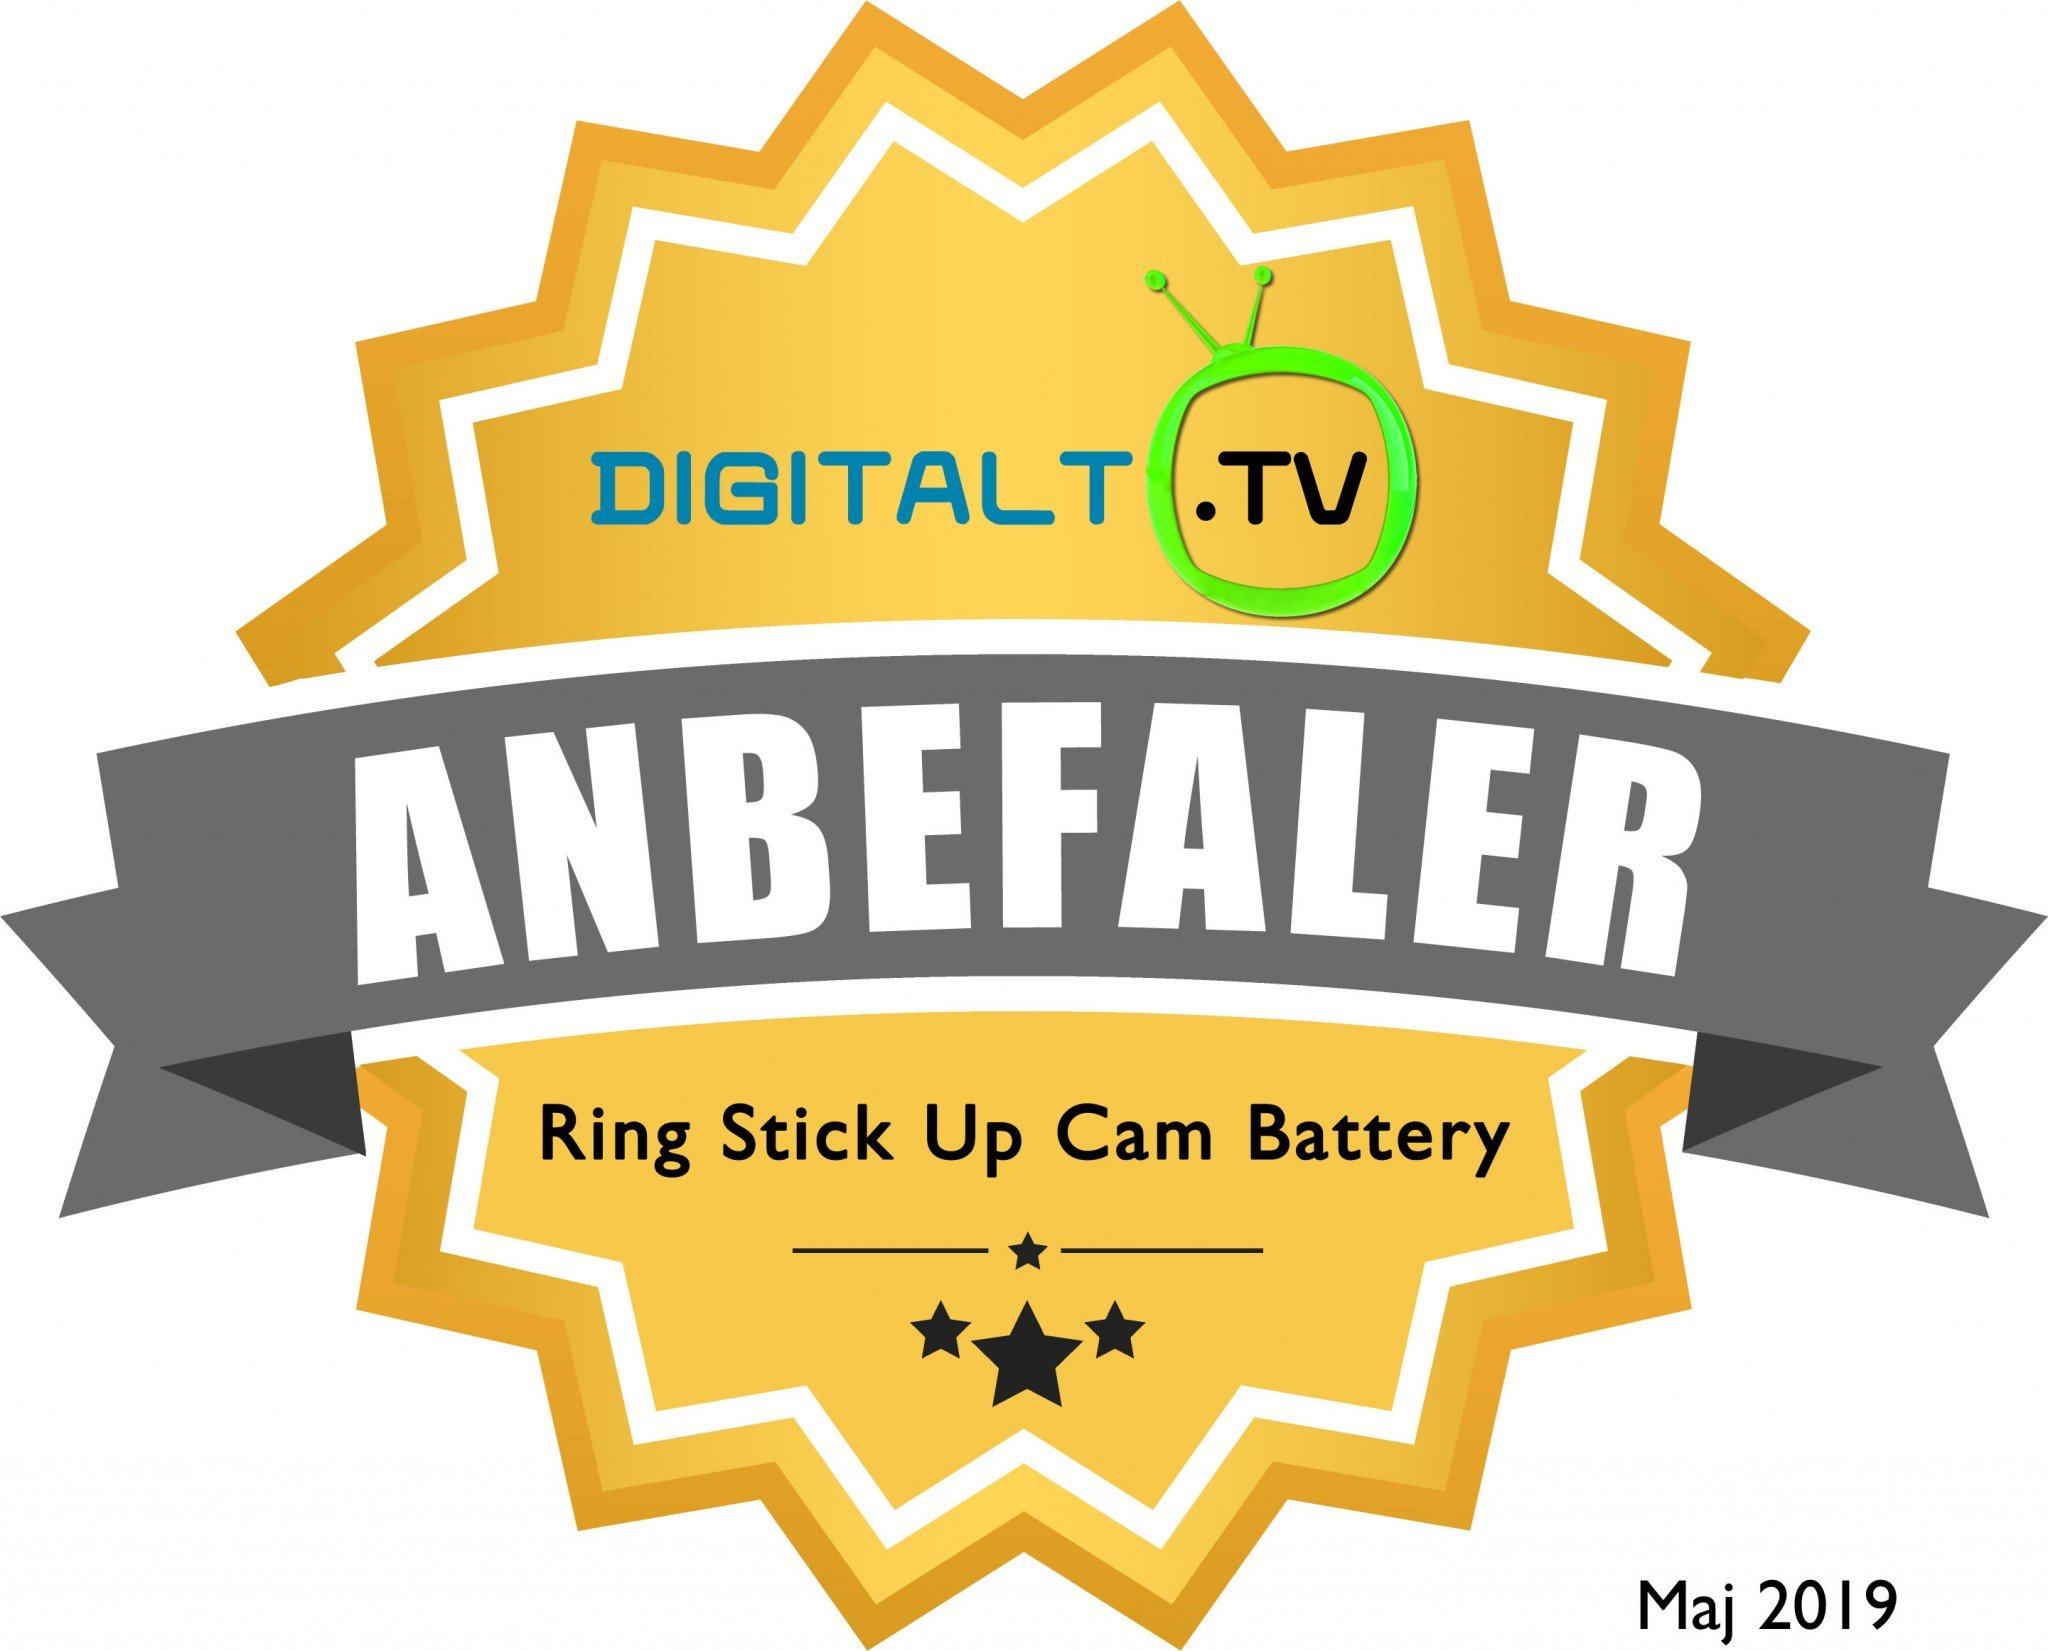 Ring Stick Up Cam Battery Logo anbefaling